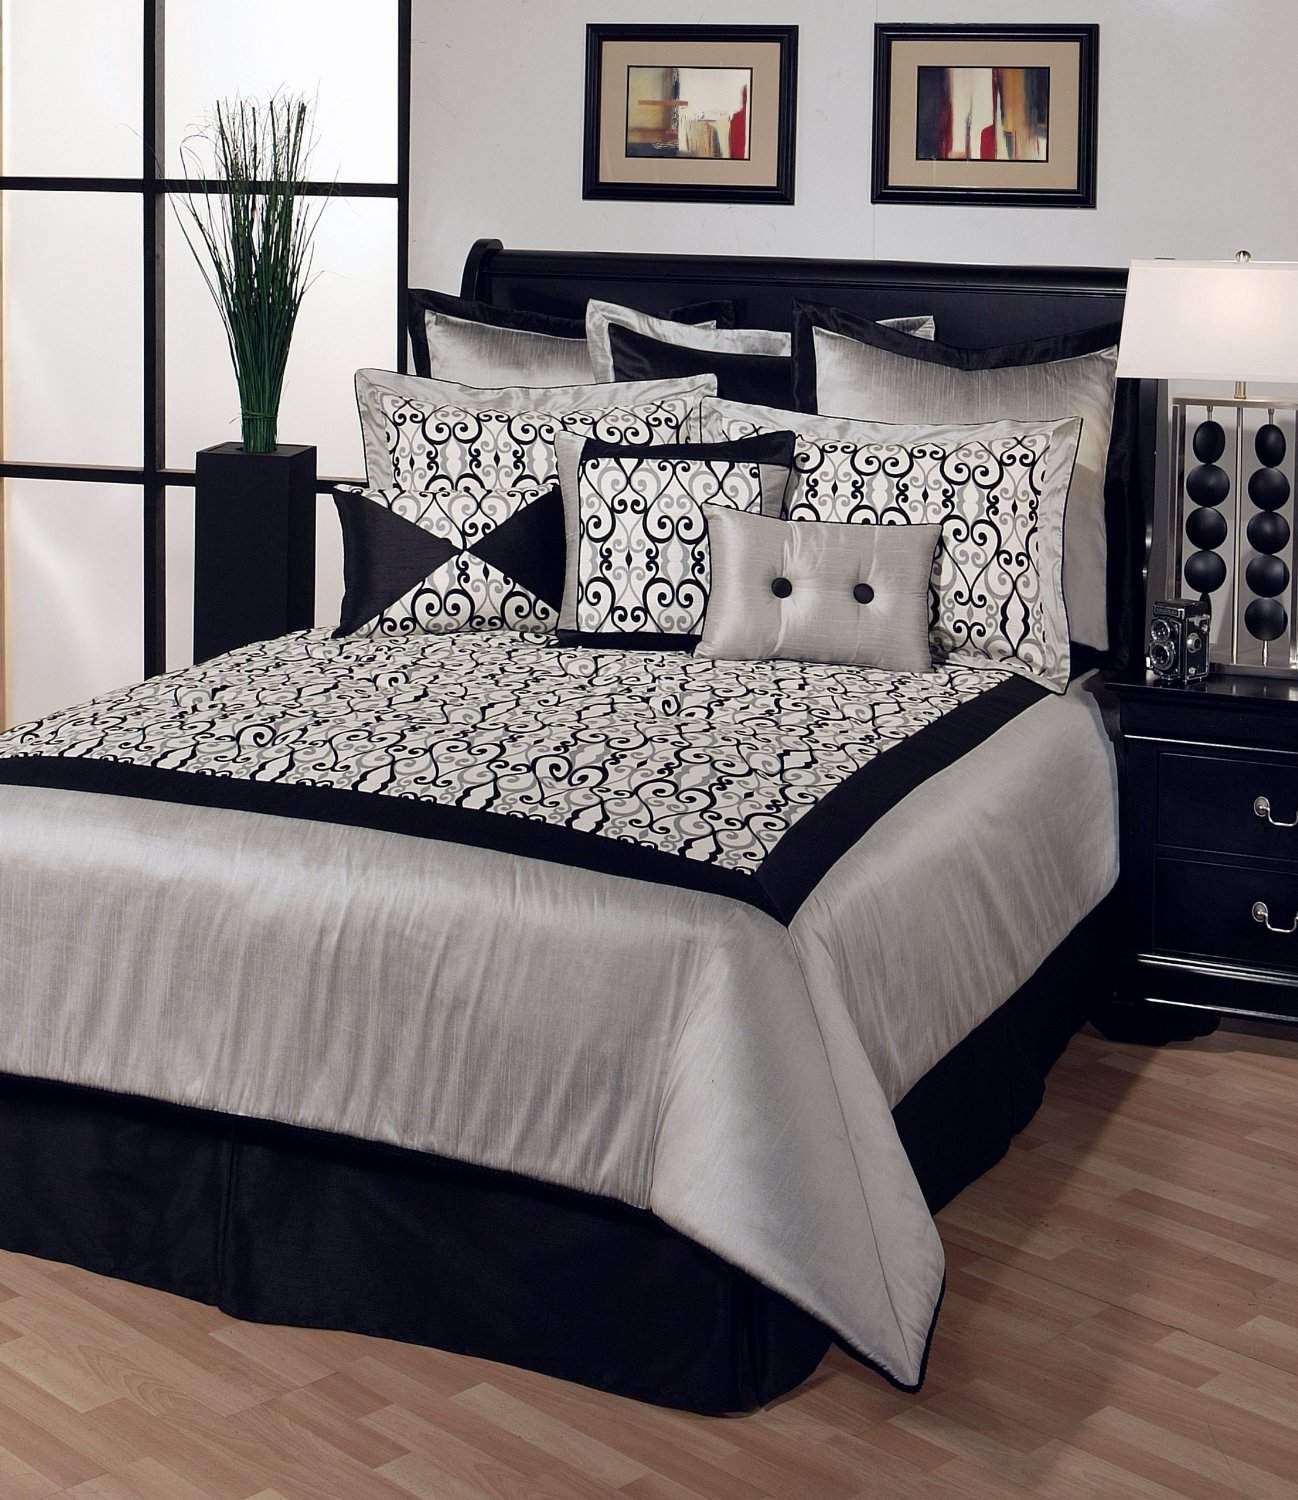 Black White Bedroom Decorating Ideas with pillow accent